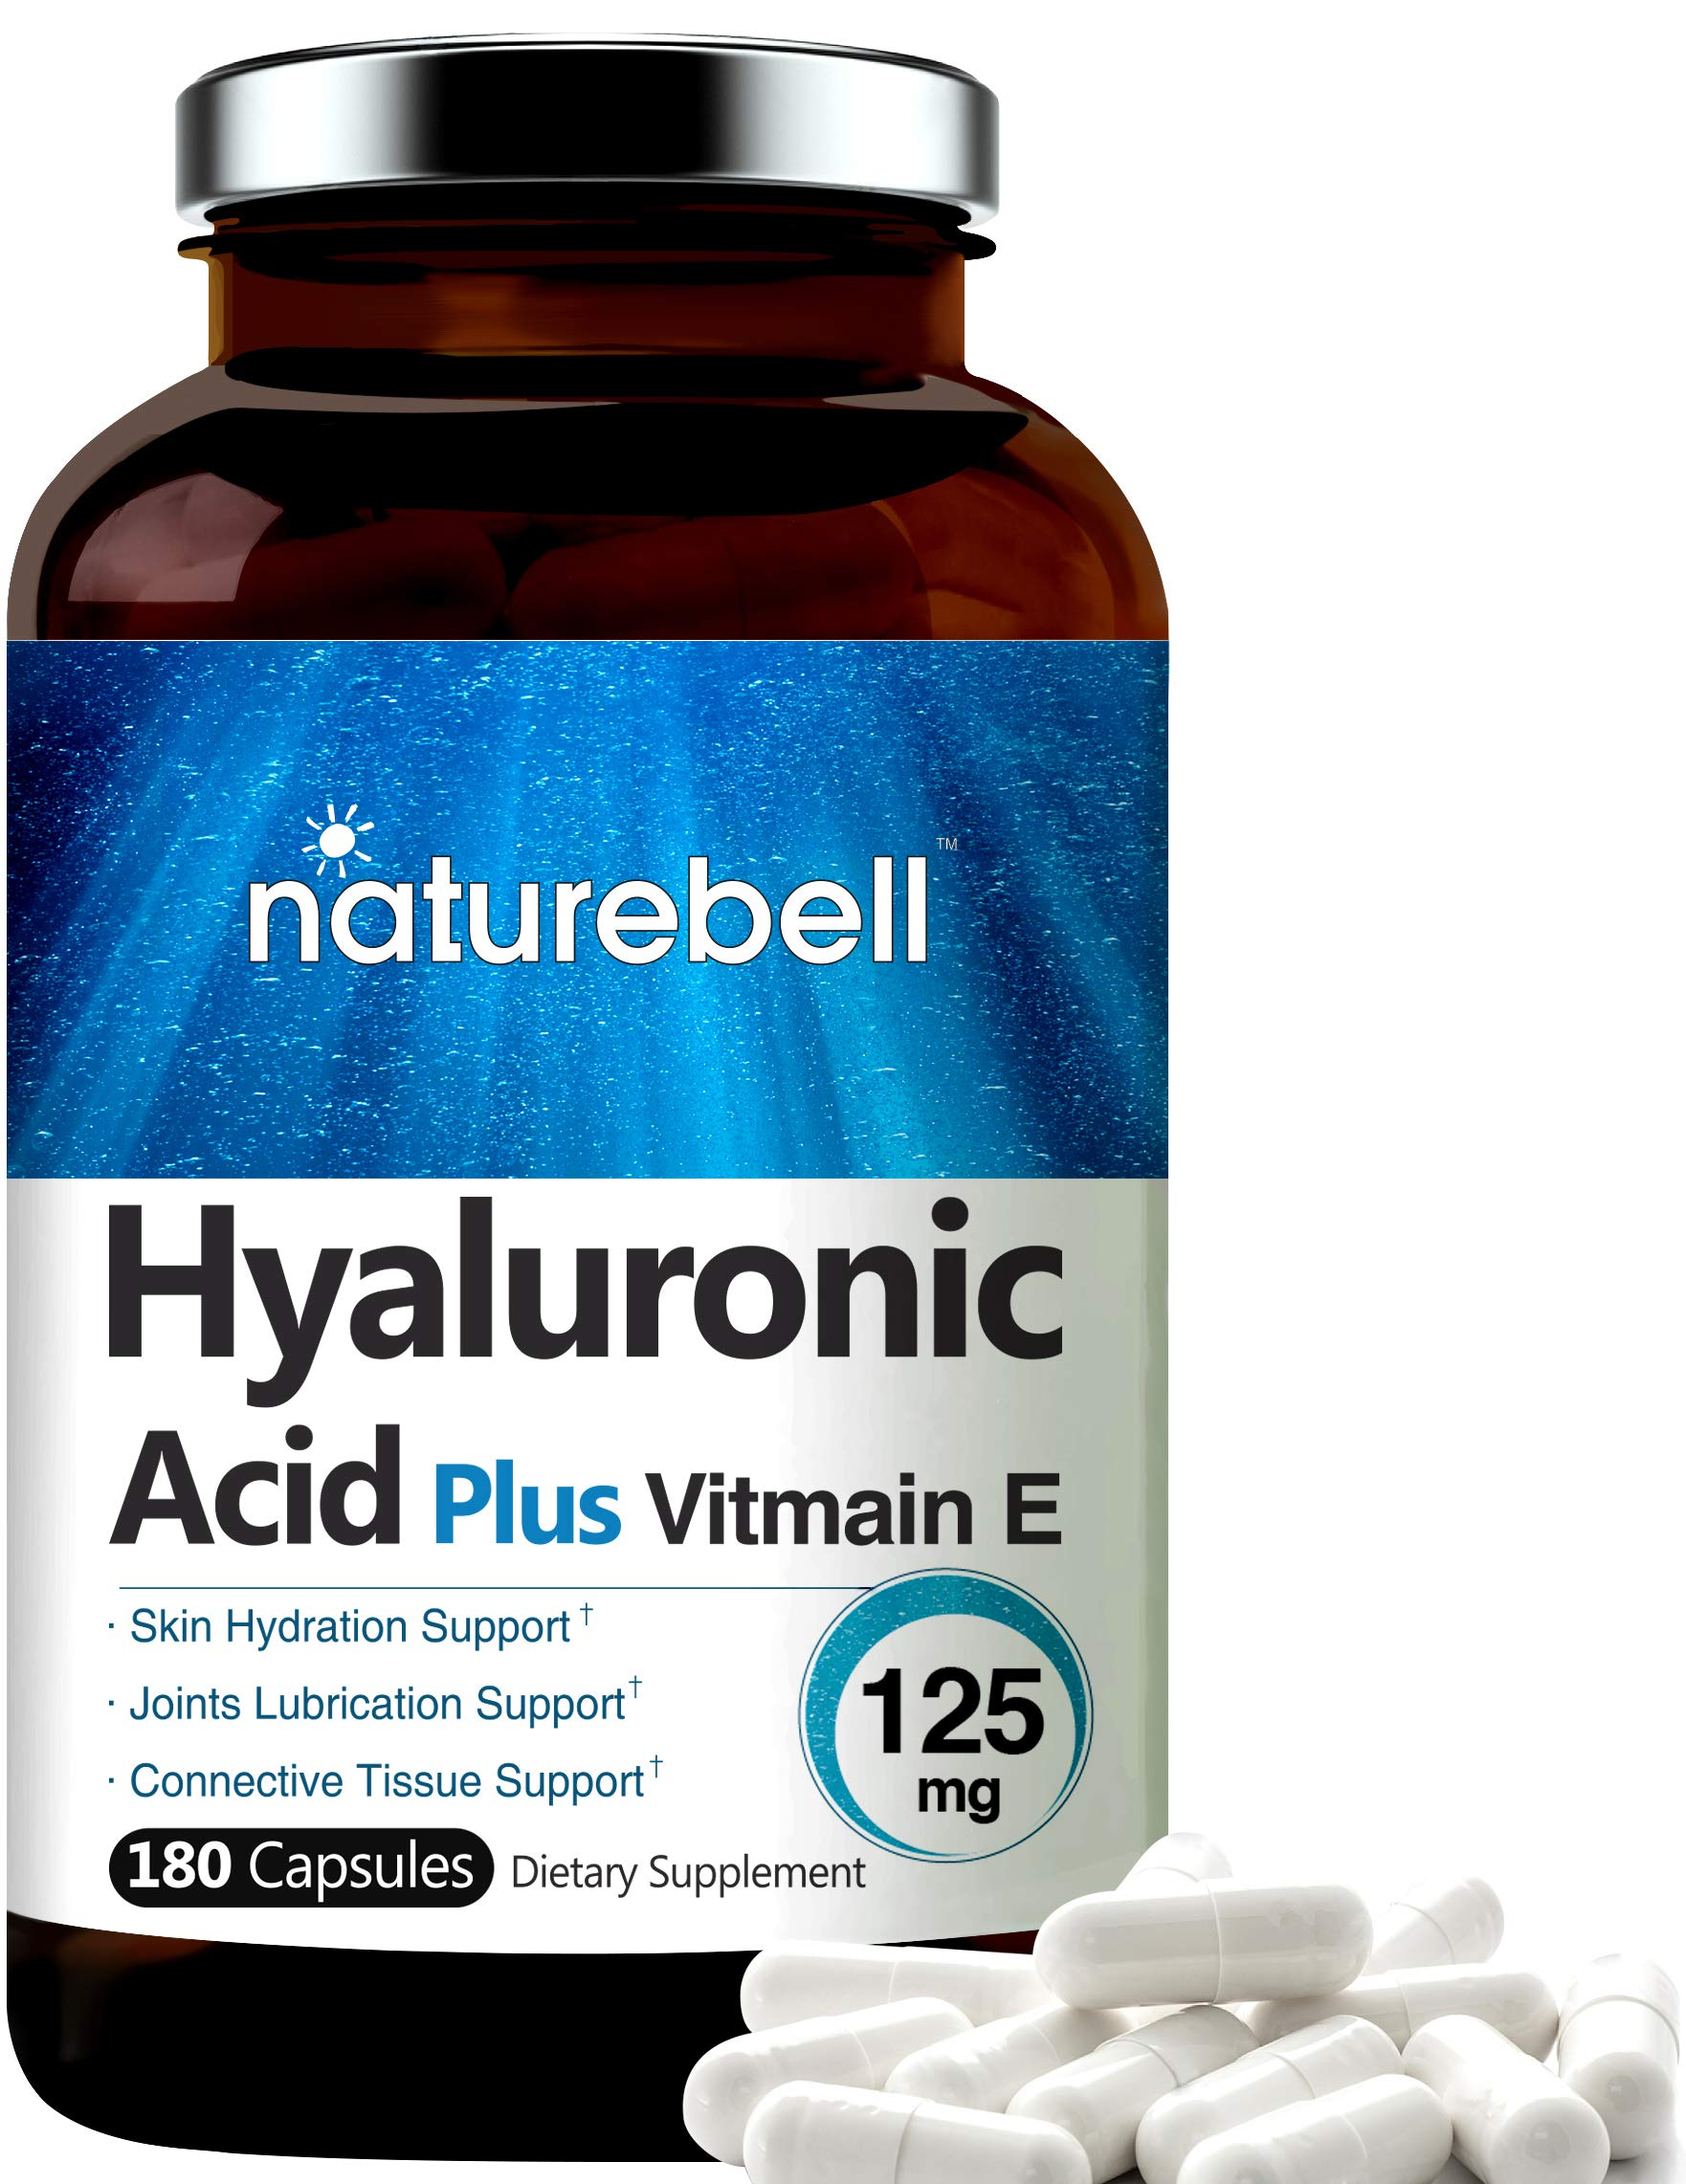 NatureBell Hyaluronic Acid with Vitamin E, 125mg,180 Capsules, Supports Antioxidant, Skin Hydration and Joints Lubrication, No GMOs.